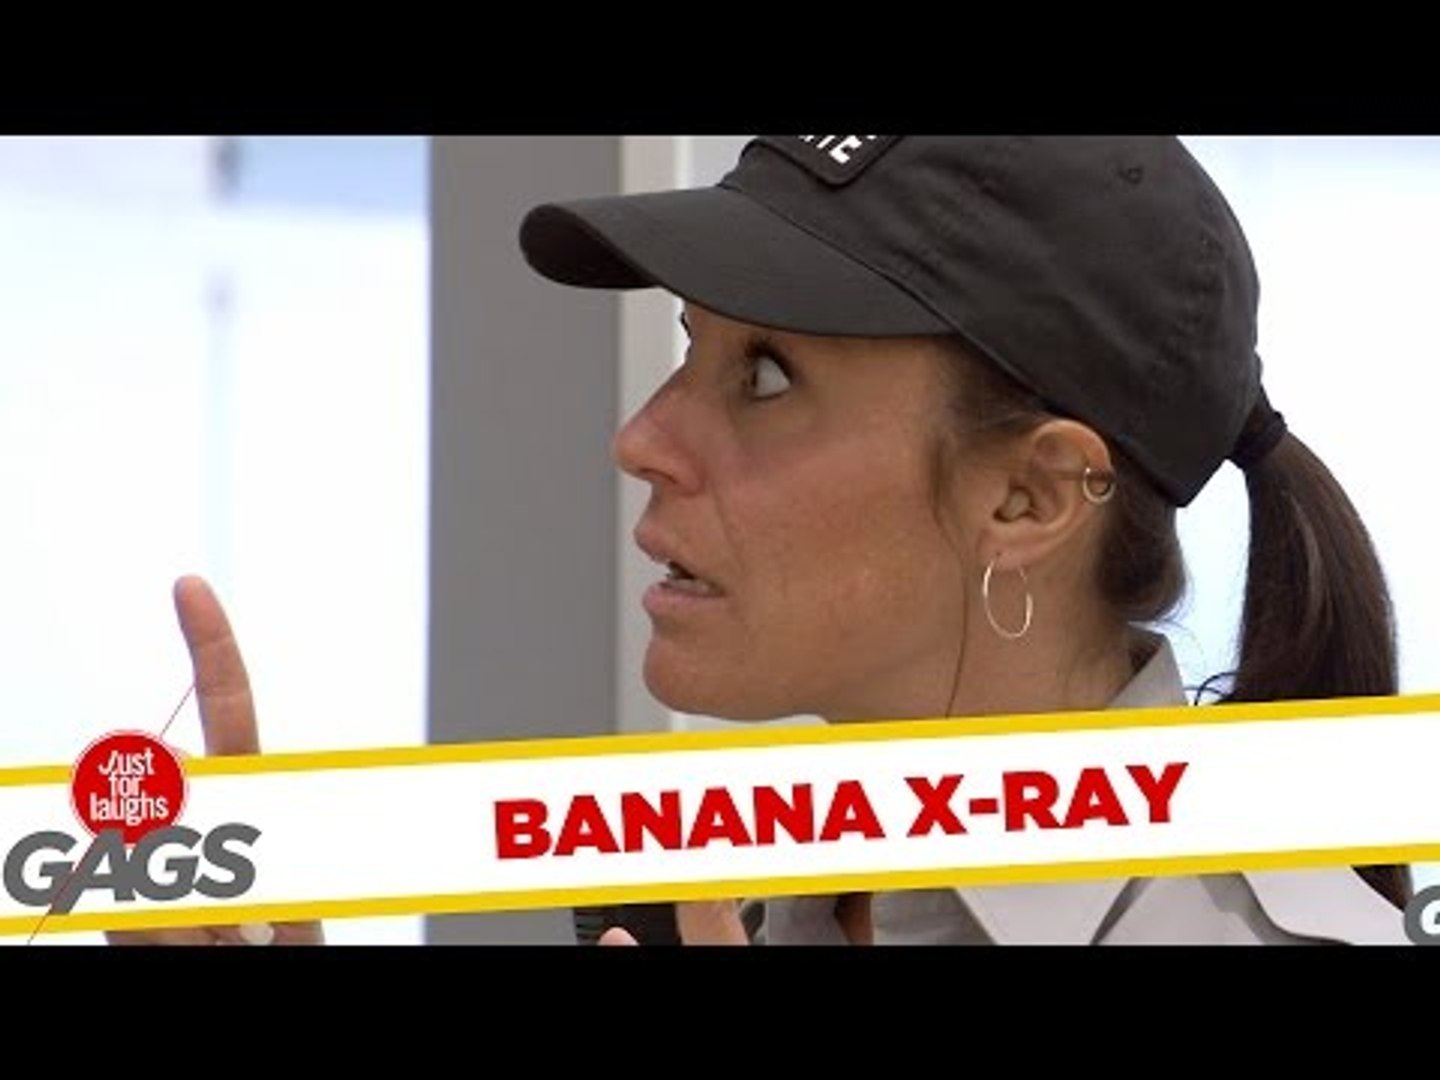 Long Banana in Man's Pants - Just For Laughs Gags